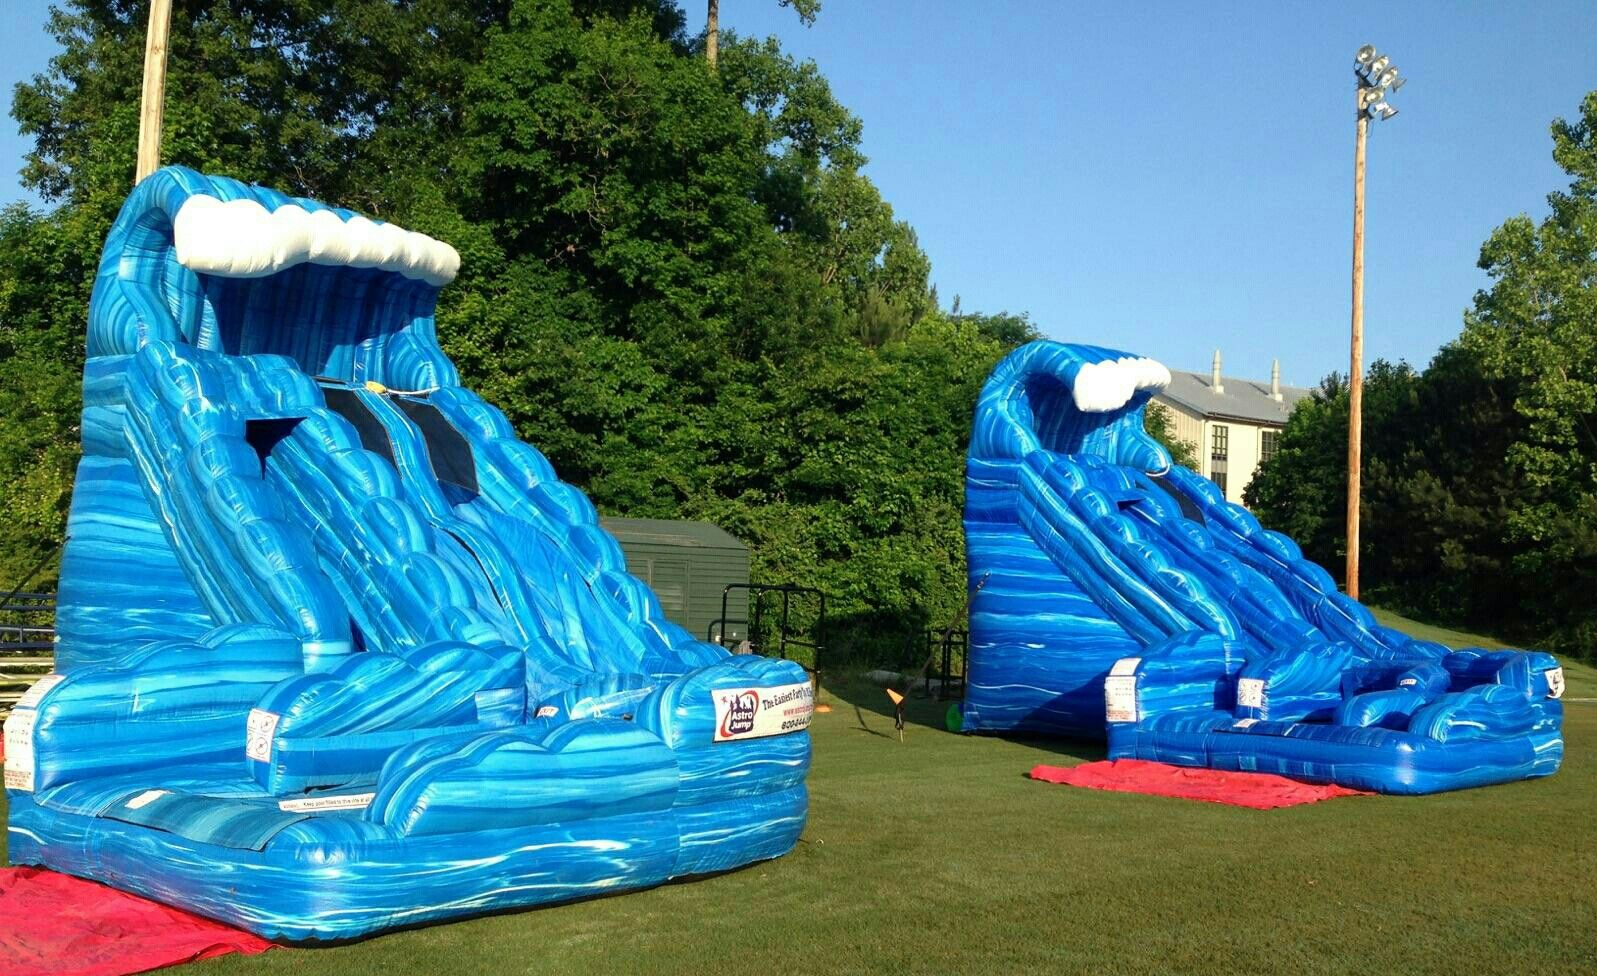 18ft monster wave waterslide rentals from astro jump of